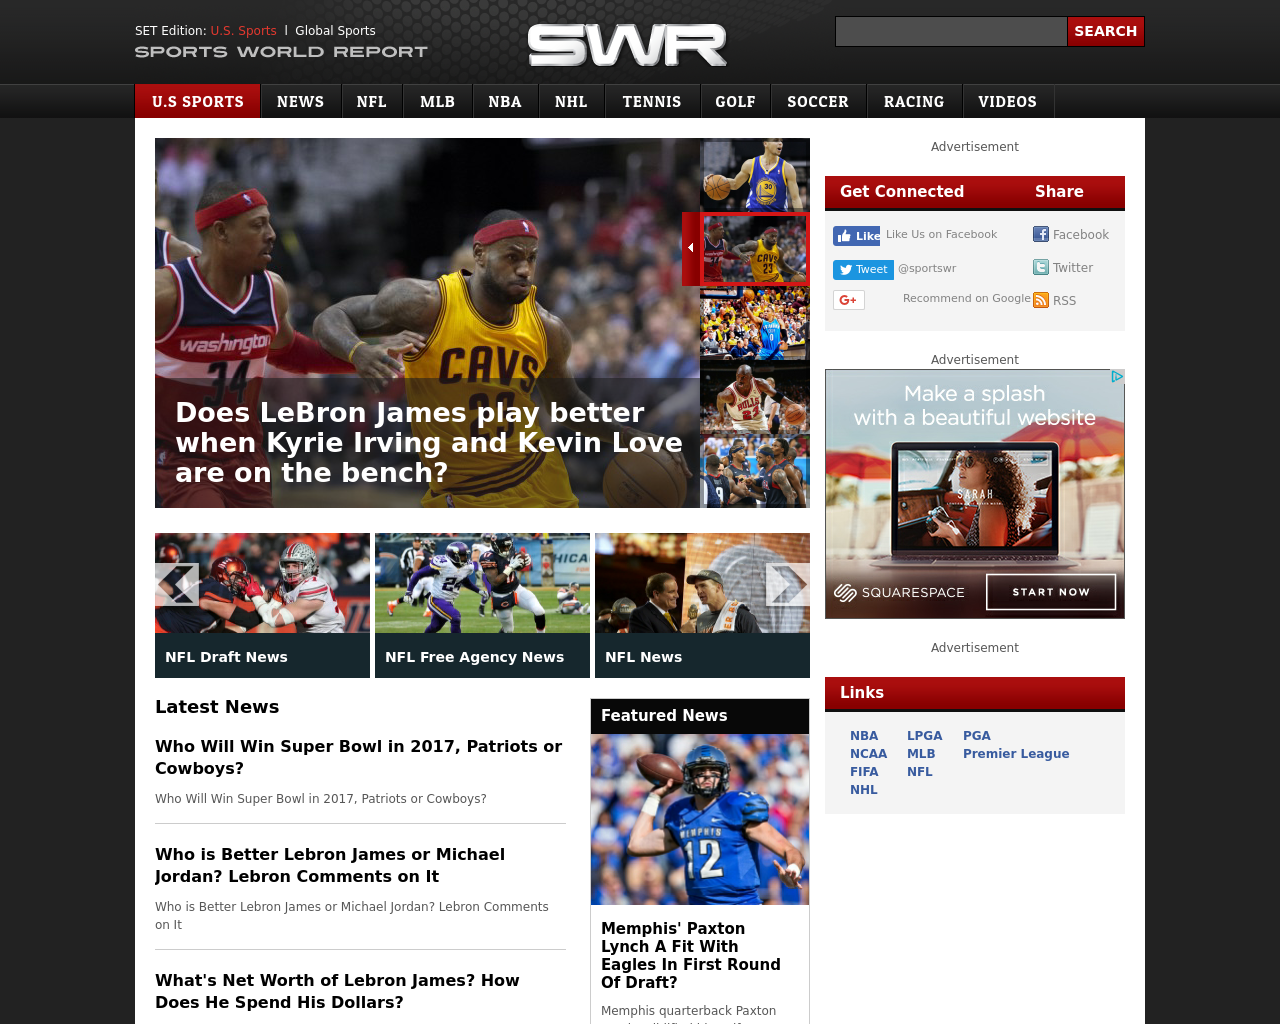 Sports-World-Report-Advertising-Reviews-Pricing